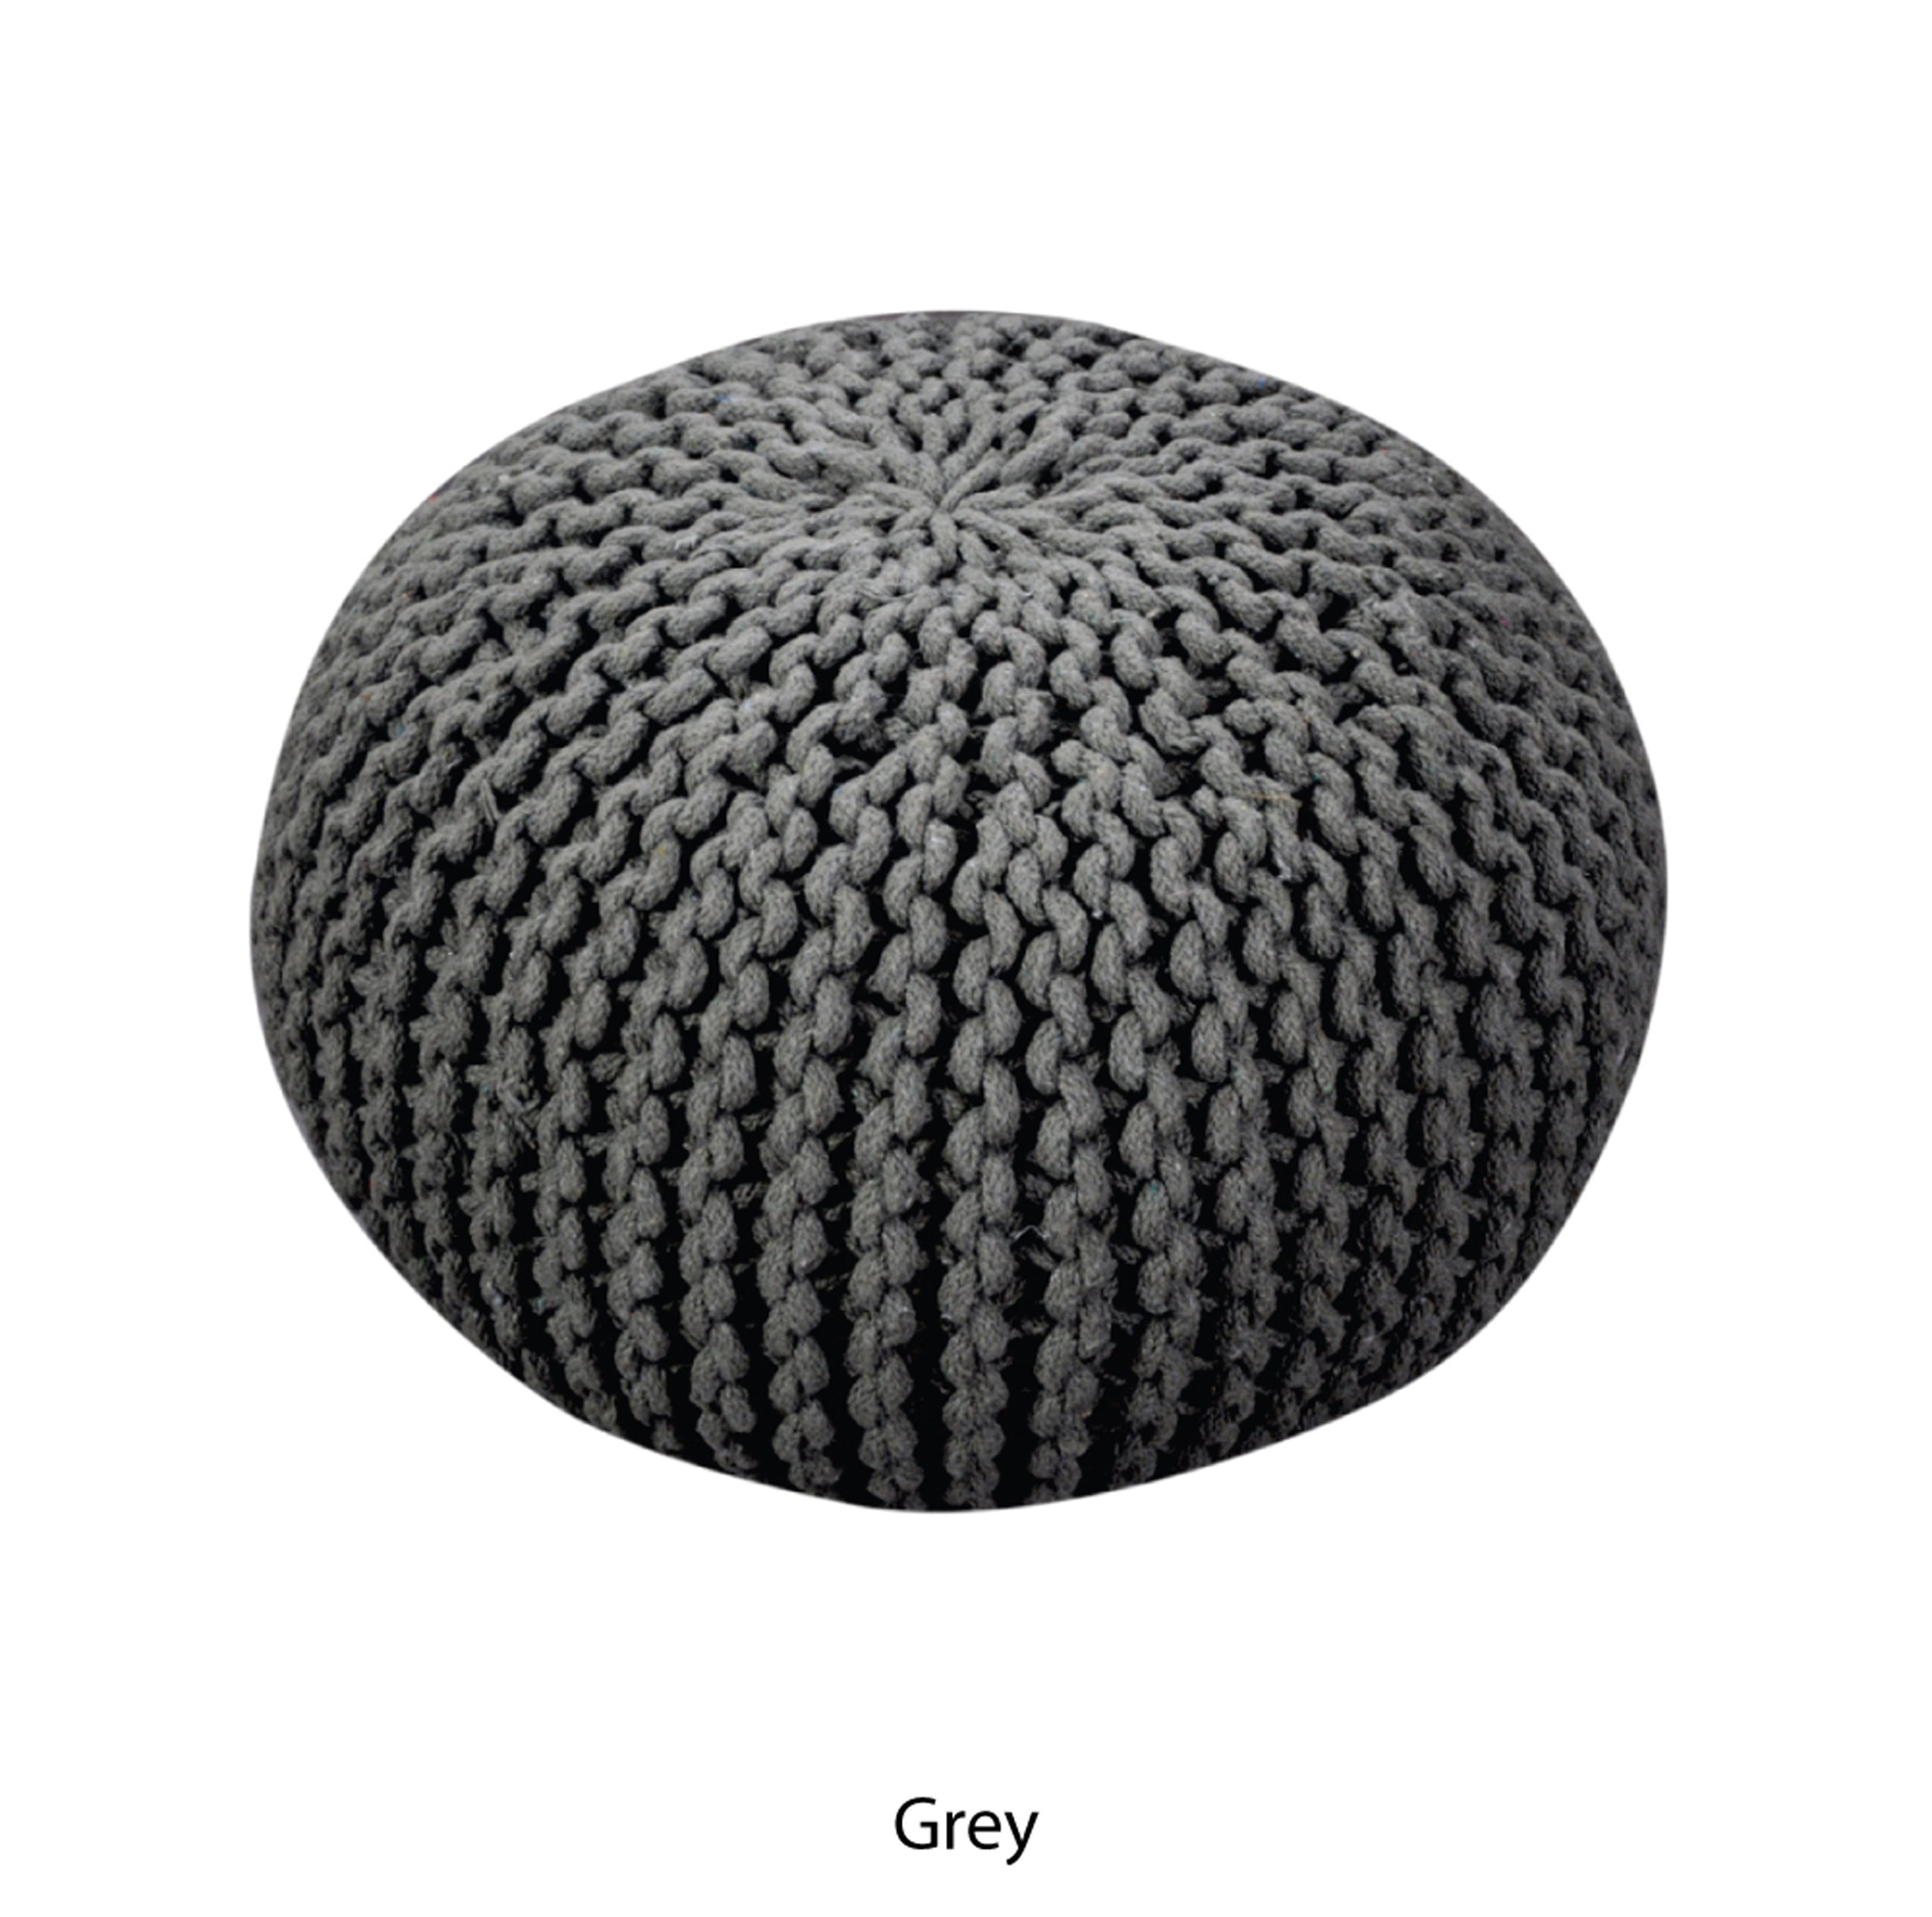 Poona Hand Knitted Artisan Round Pouf (Grey)